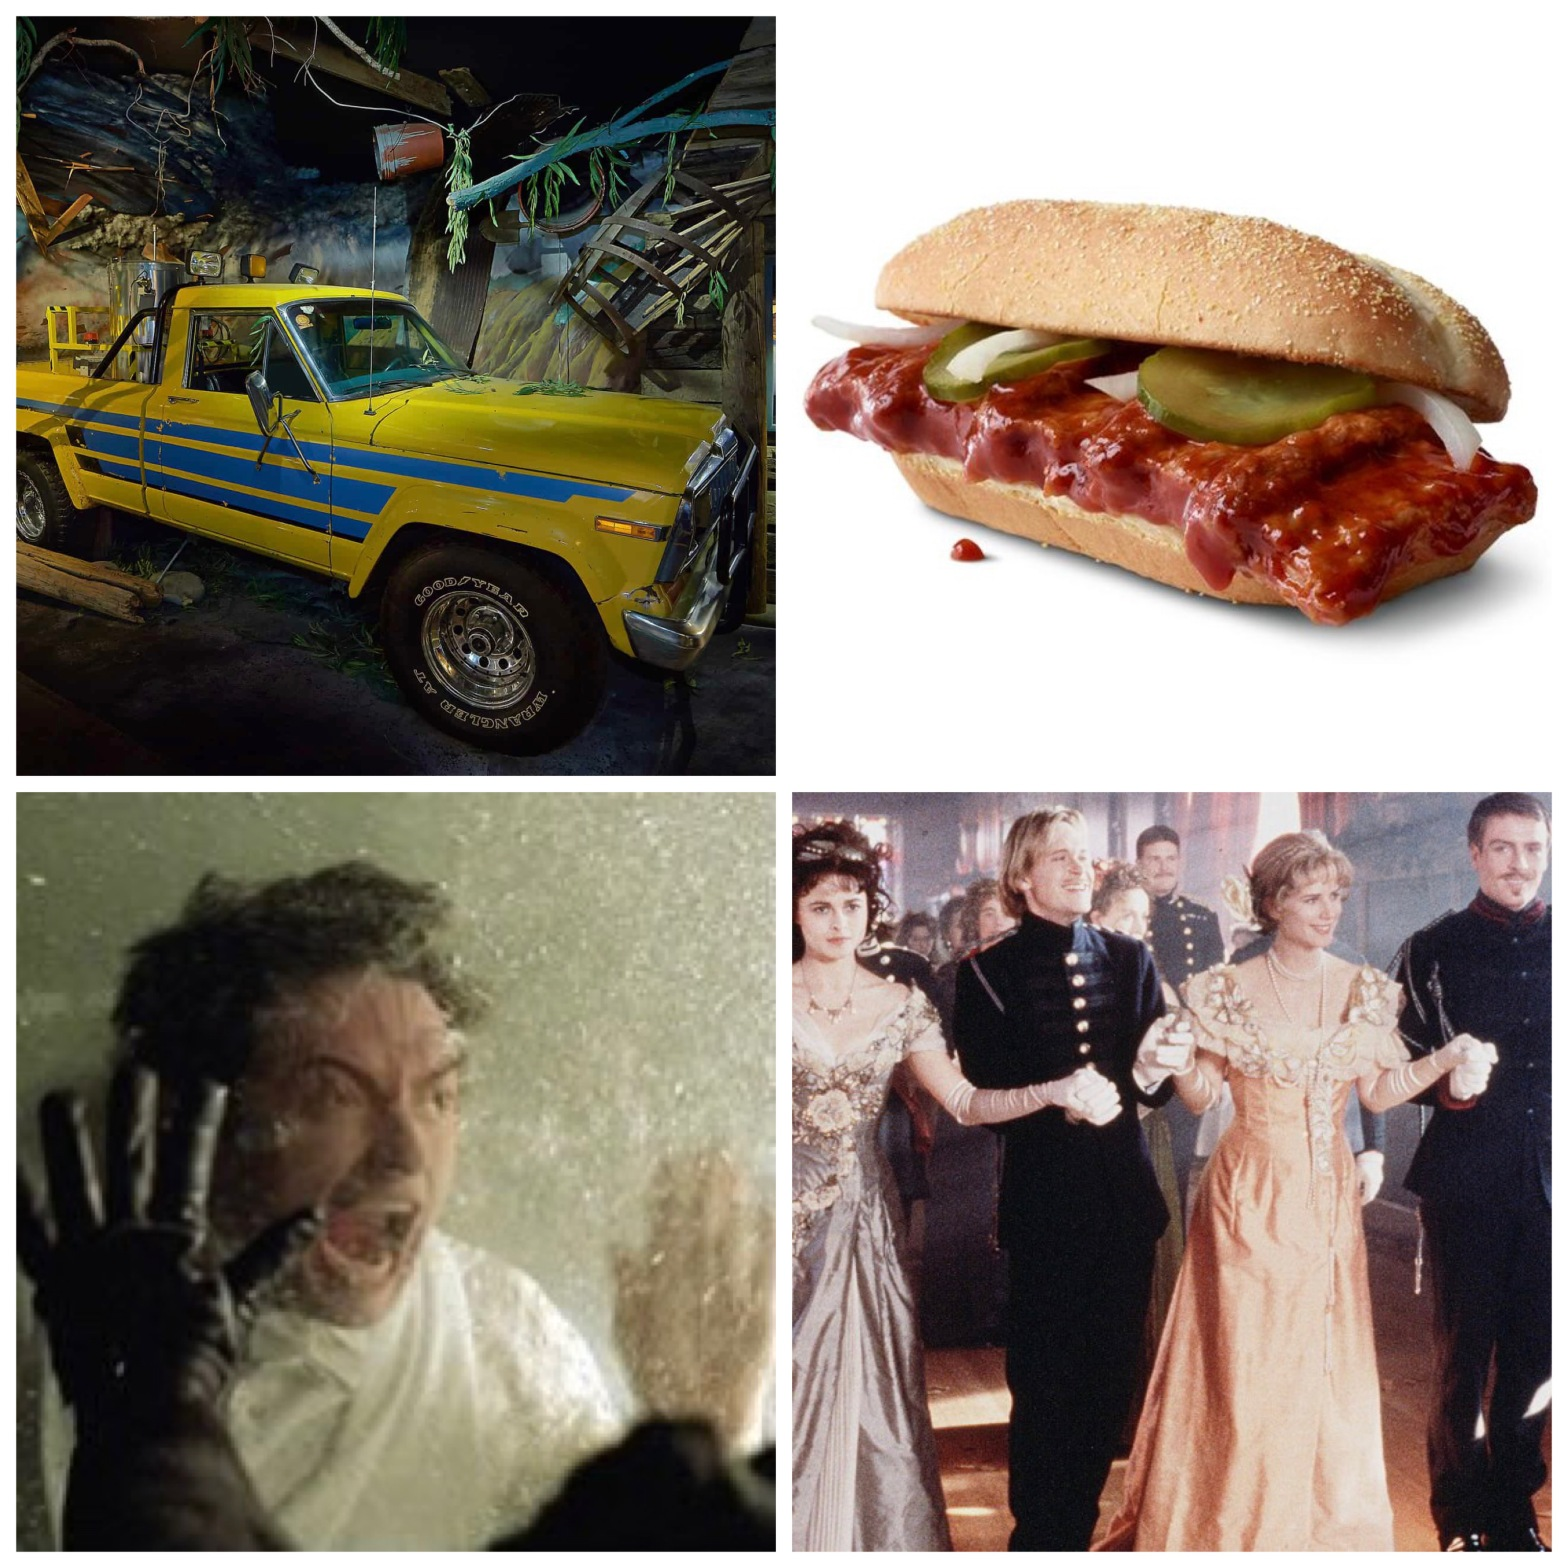 The Dodge Ram from Twister, The McRib, Hugh Jackman in The Prestige, and the double wedding from Twelfth Night.